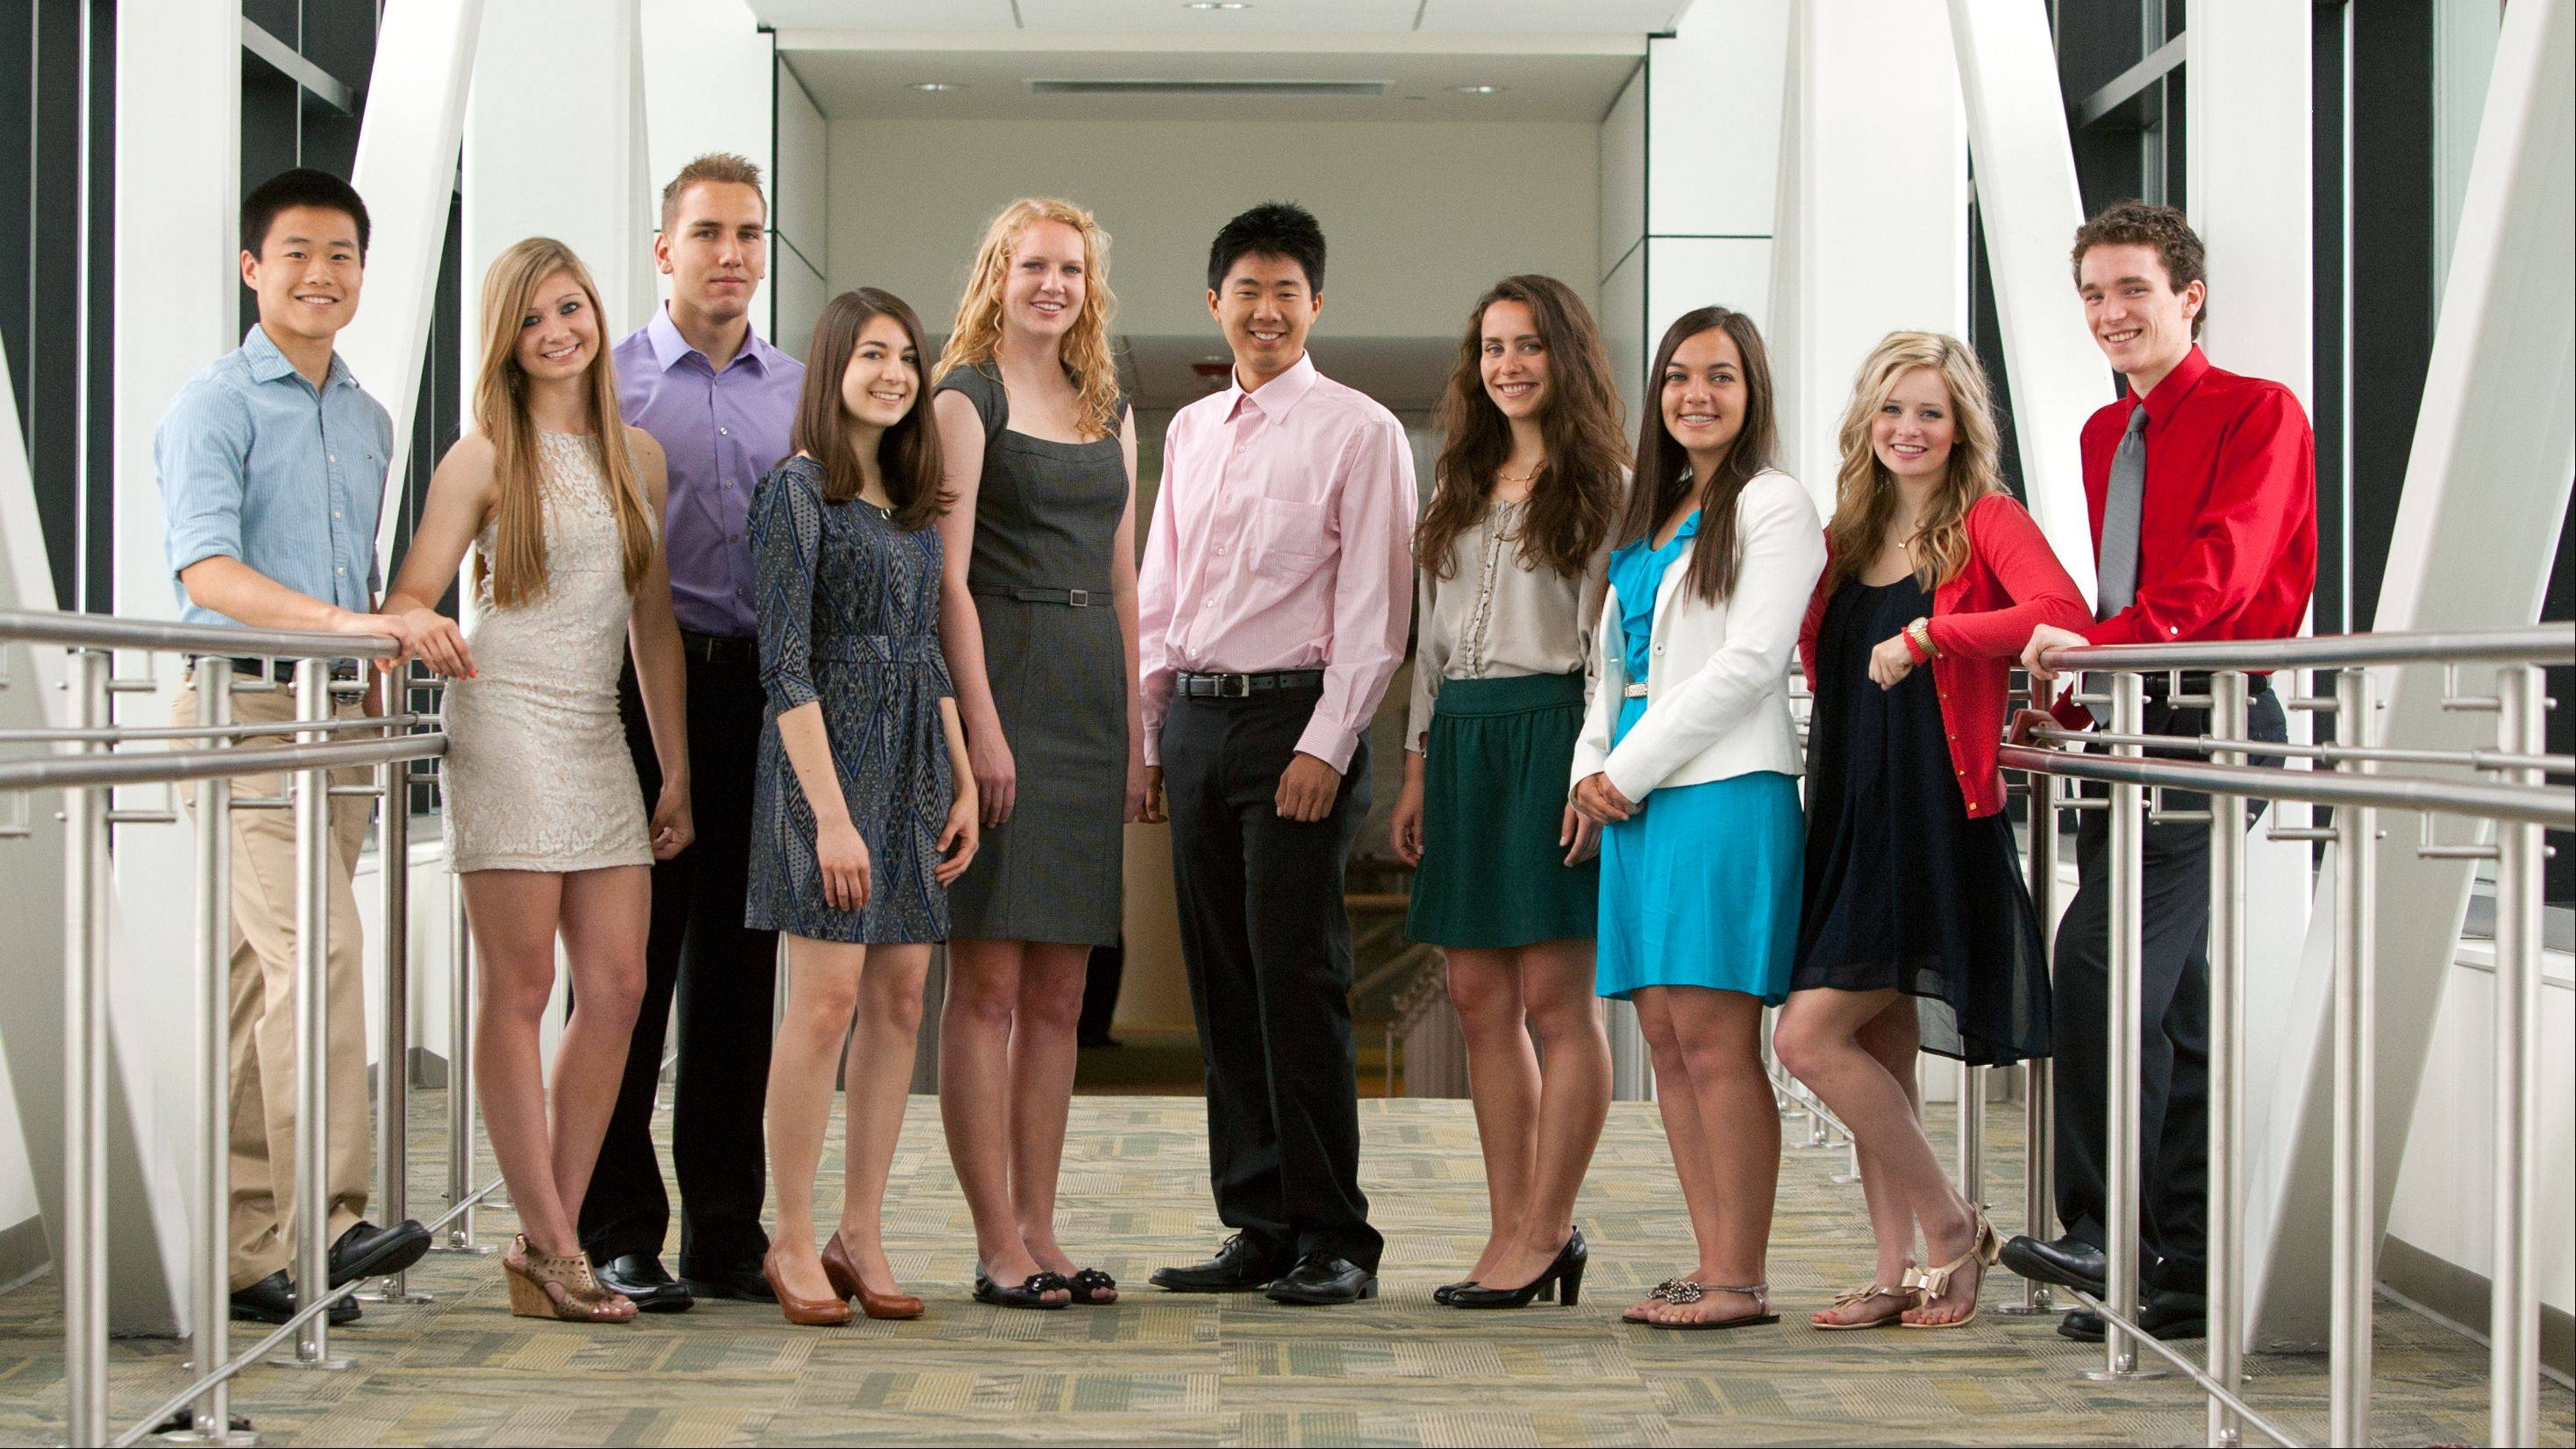 The 2012-2013 Daily Herald DuPage County Academic Team poses at the College of DuPage. From left: Danny Zhuang, Metea Valley High School; Jourdan Ewoldt, Glenbard East High School; Vassil Mladenov, Lake Park High School; Lucia Korpas, Naperville Central High School; Megan Knister, Hinsdale Central High School; Alex Liu, Neuqua Valley High School; Alana Osterling, Downers Grove North High School; Maria Arianas, Fenton High School; Cassandra Crifase, Addison Trail High School; and Andrew Bean, Glenbard South High School.